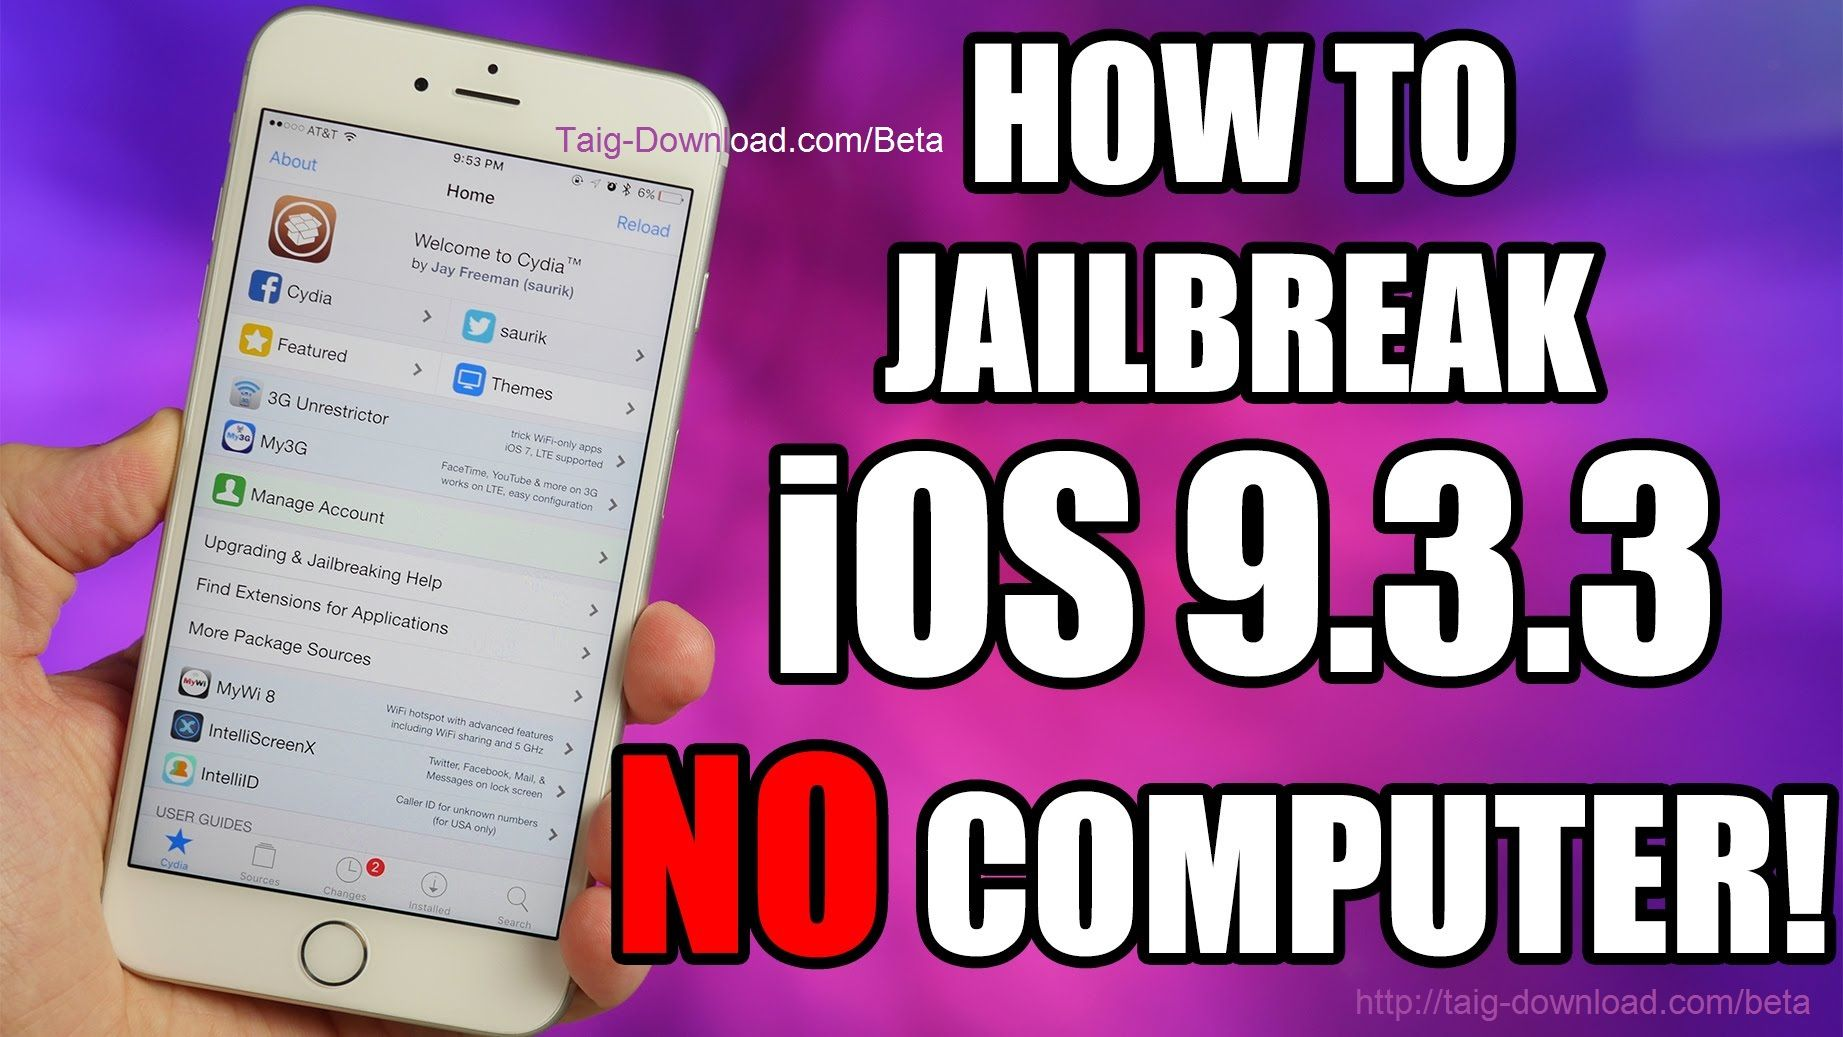 Now you can Jailbreak iOS 9.3.3 without computer. Normally you have